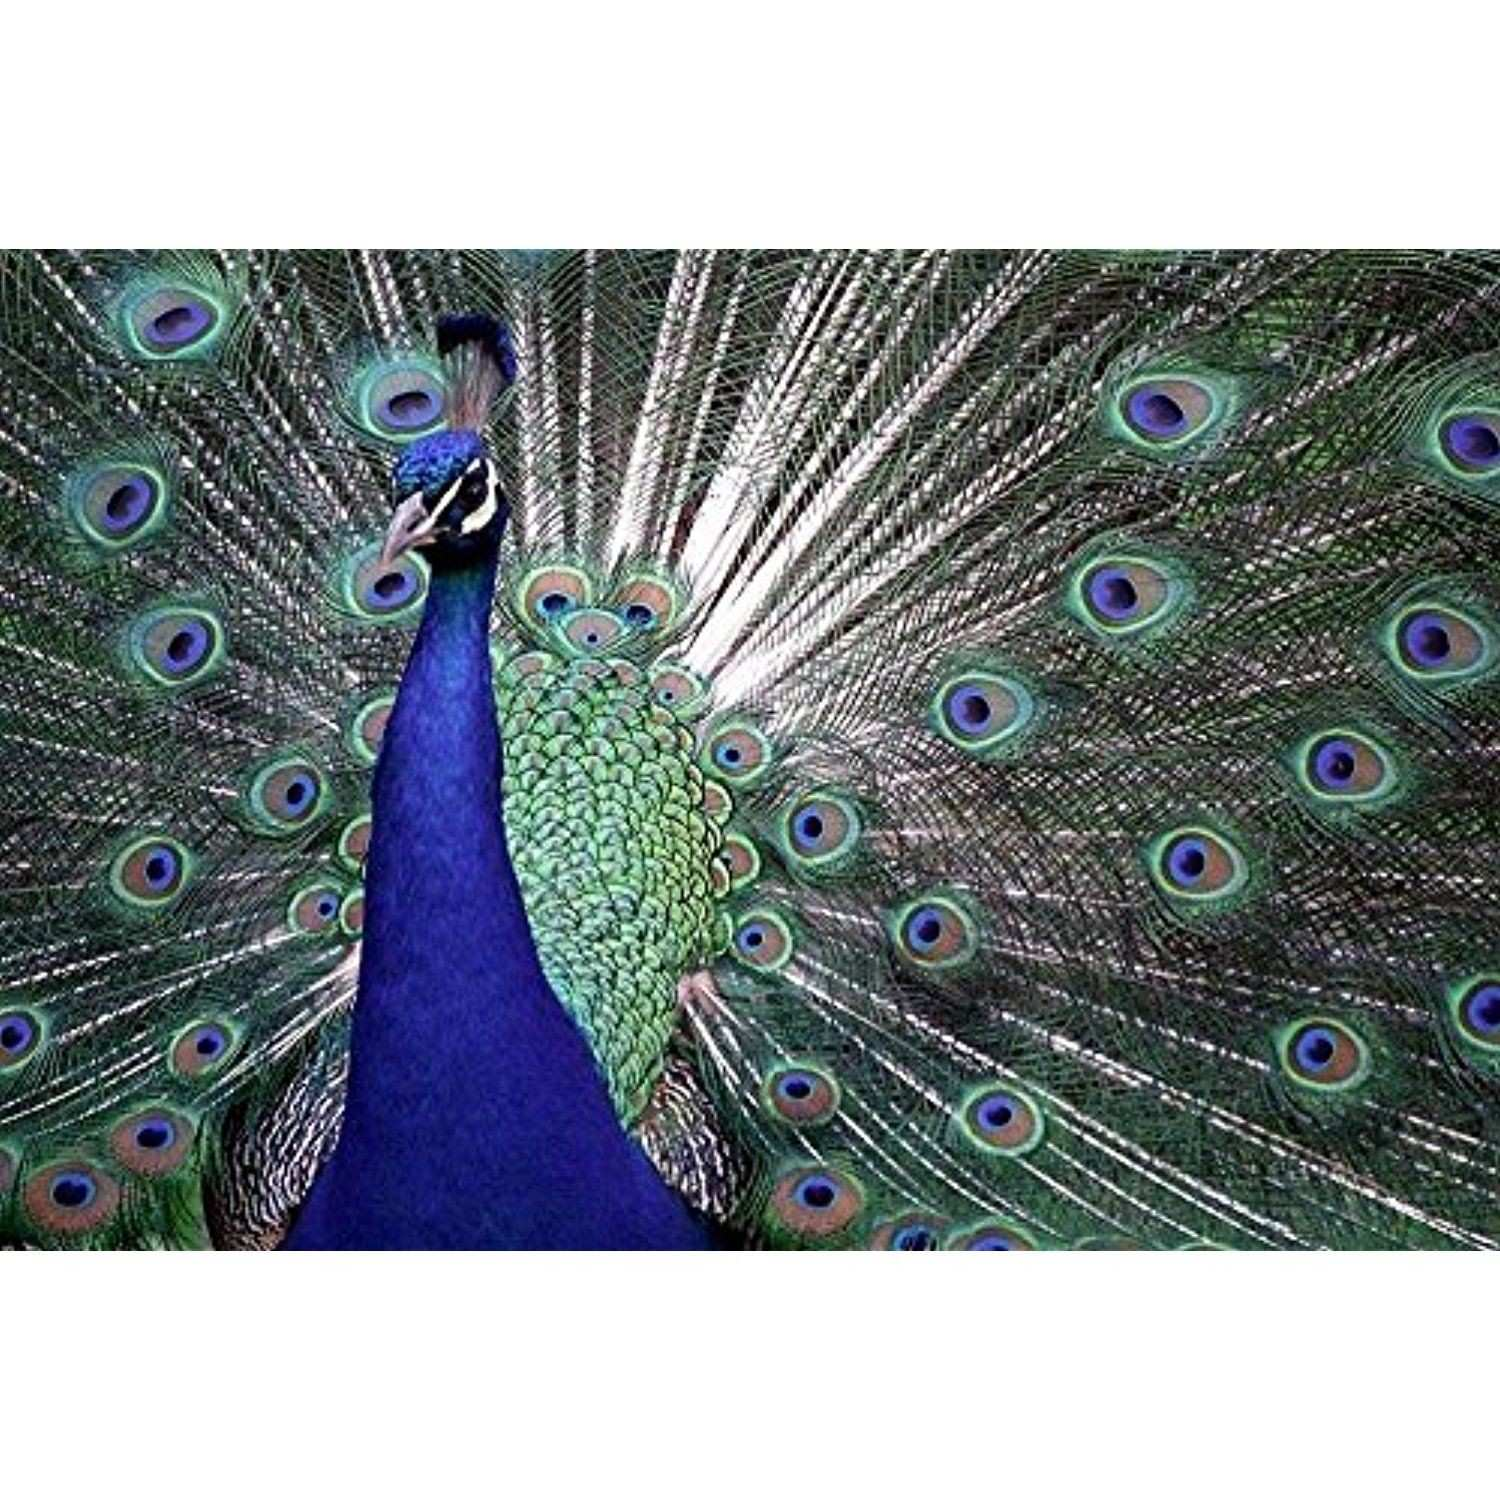 Peacock Shows Its Feathers Art Print Poster Wall Decor Home Decor